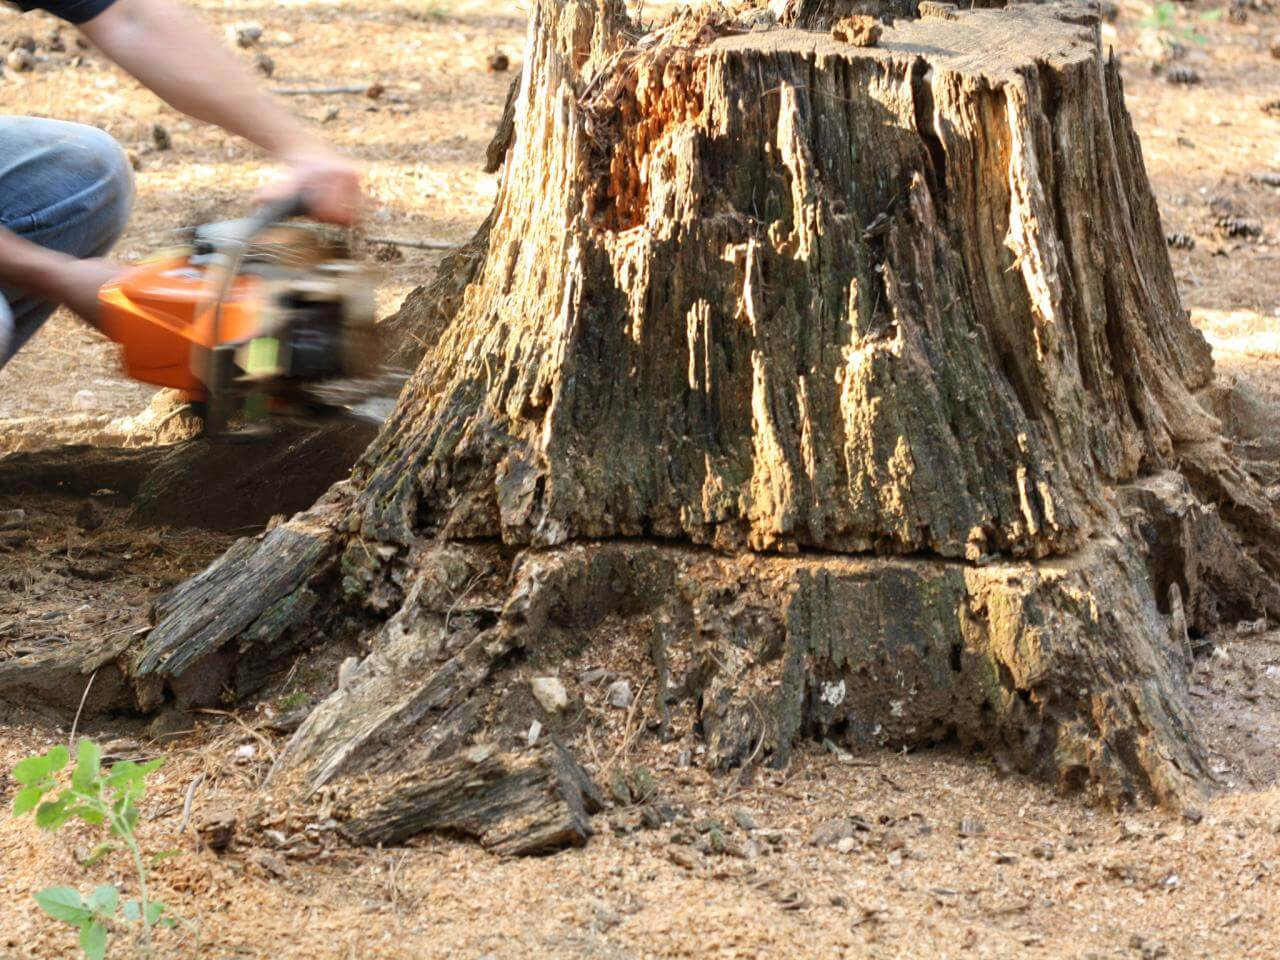 Stump Removal-Dayton Tree Trimming and Stump Grinding Services-We Offer Tree Trimming Services, Tree Removal, Tree Pruning, Tree Cutting, Residential and Commercial Tree Trimming Services, Storm Damage, Emergency Tree Removal, Land Clearing, Tree Companies, Tree Care Service, Stump Grinding, and we're the Best Tree Trimming Company Near You Guaranteed!